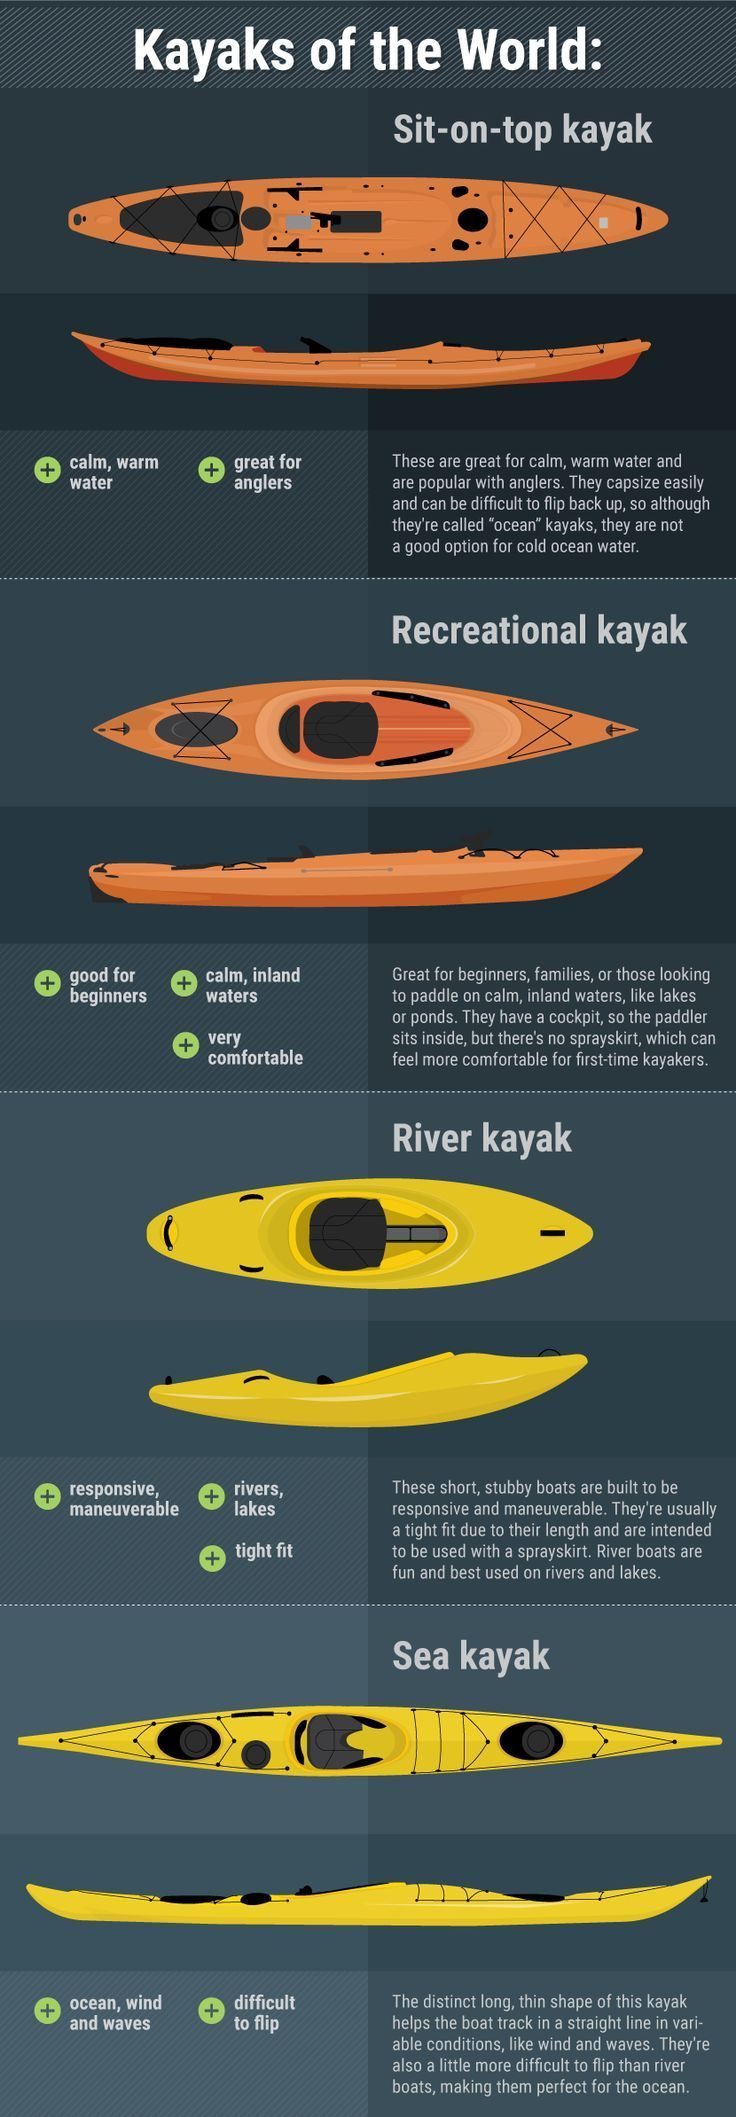 Kayaks of the World